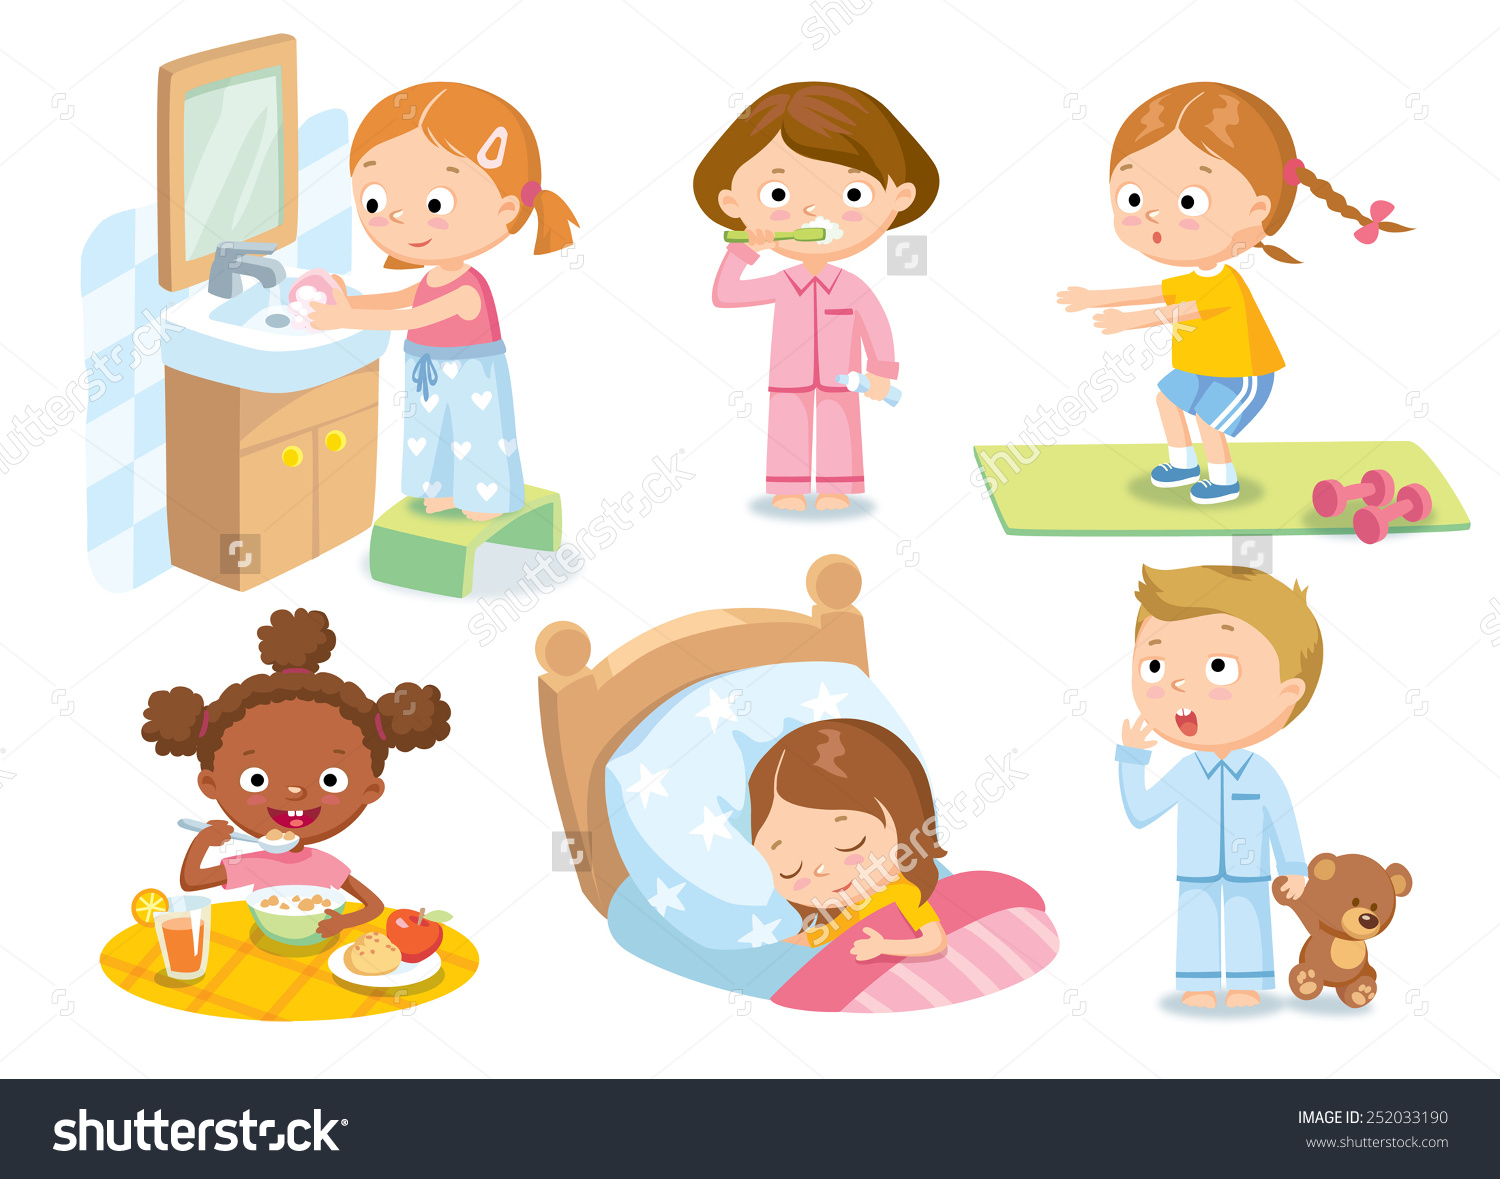 Childrens Daily Routine Stock Vector 252033190.